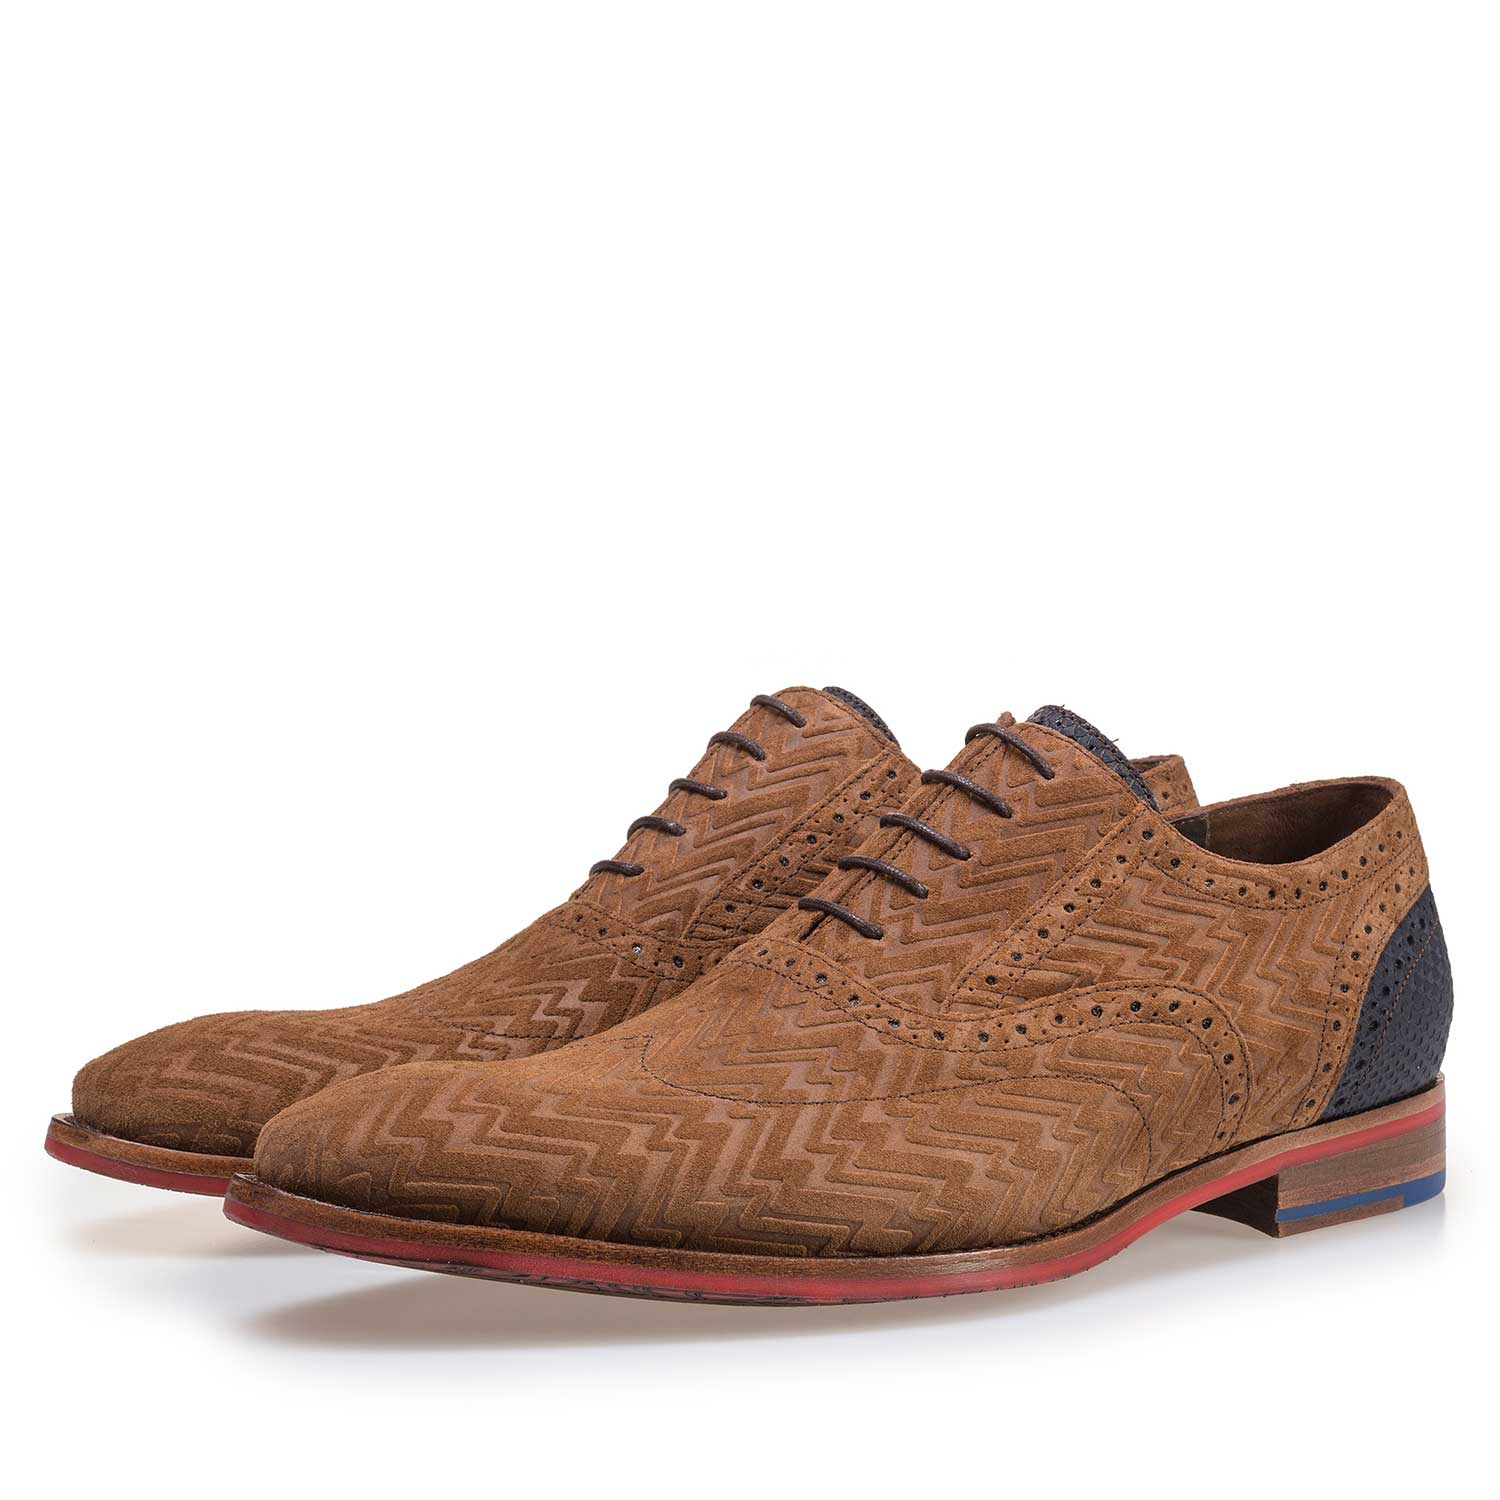 19062/06 - Cognac-coloured suede leather lace shoe with print motif